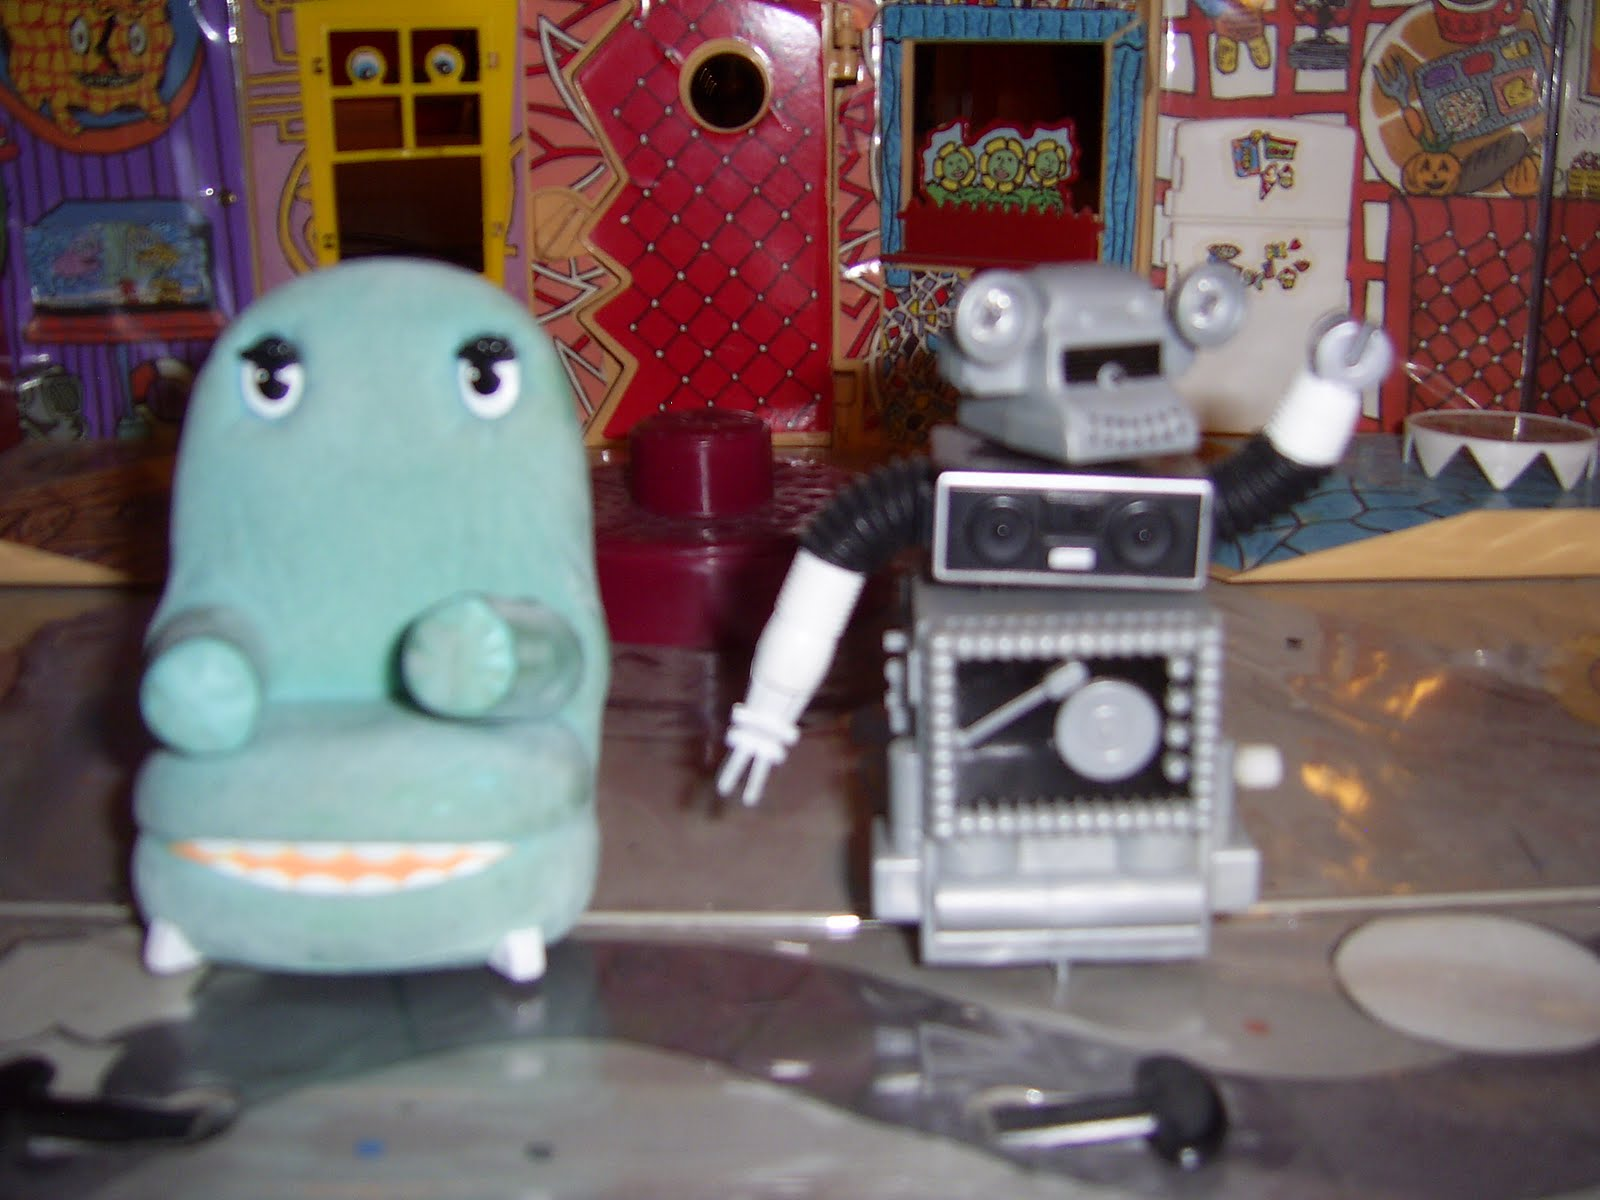 I LOVE THE SMELL OF PLASTIC- CUSTOM FIGURES Custom Pee Weeu0027s Playhouse Figures & I LOVE THE SMELL OF PLASTIC- CUSTOM FIGURES: Custom Pee Weeu0027s ...